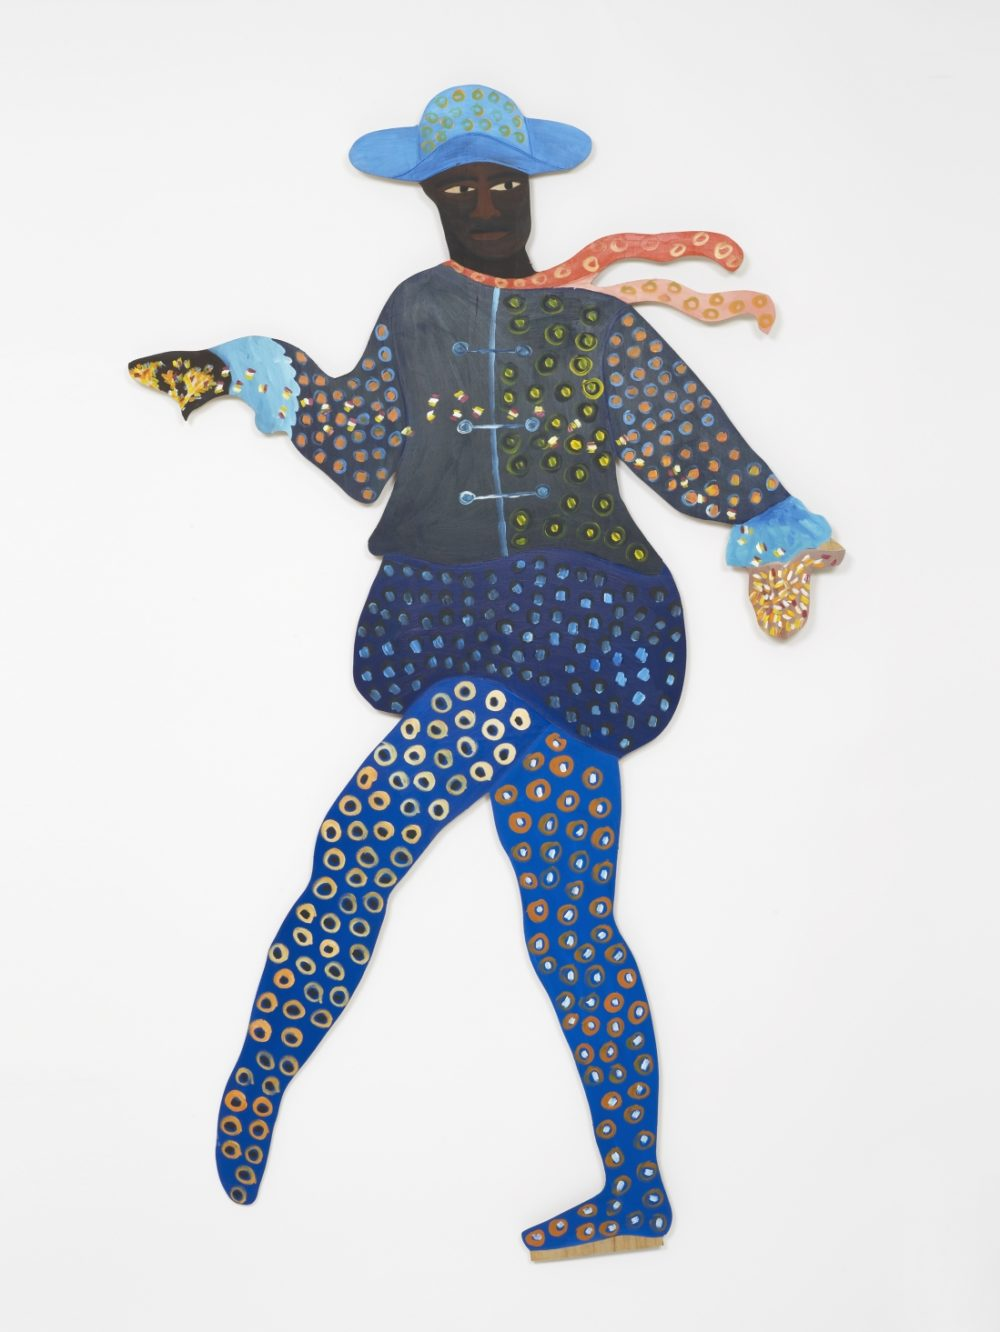 Lubaina Himid, Naming the Money (2004) Courtesy the artist and Hollybush Gardens